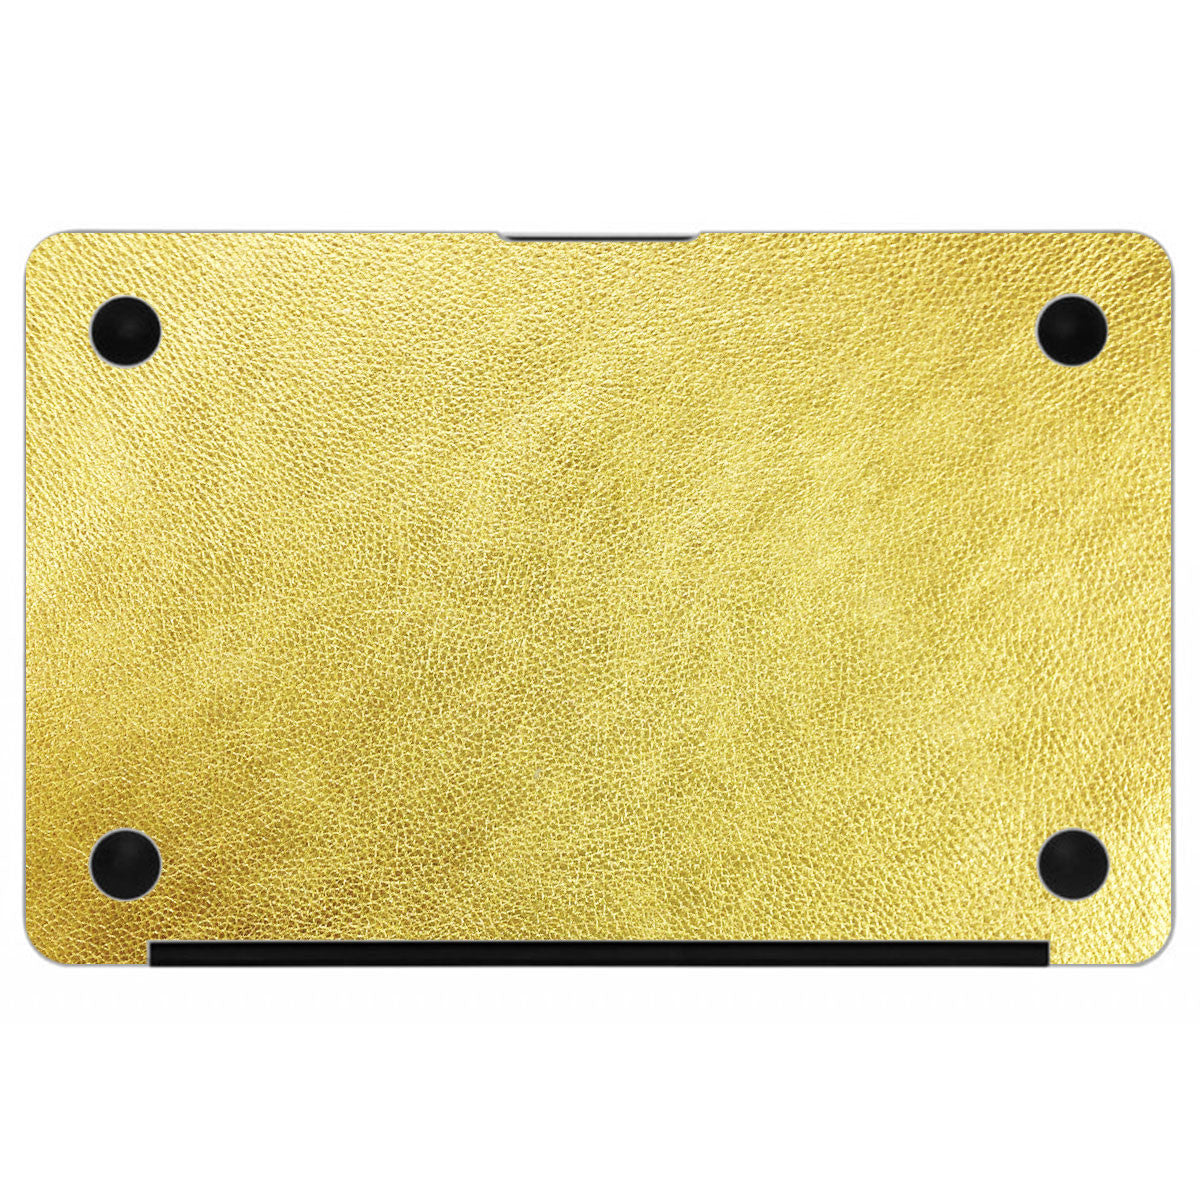 Gold MacBook Leather Bottom Cover